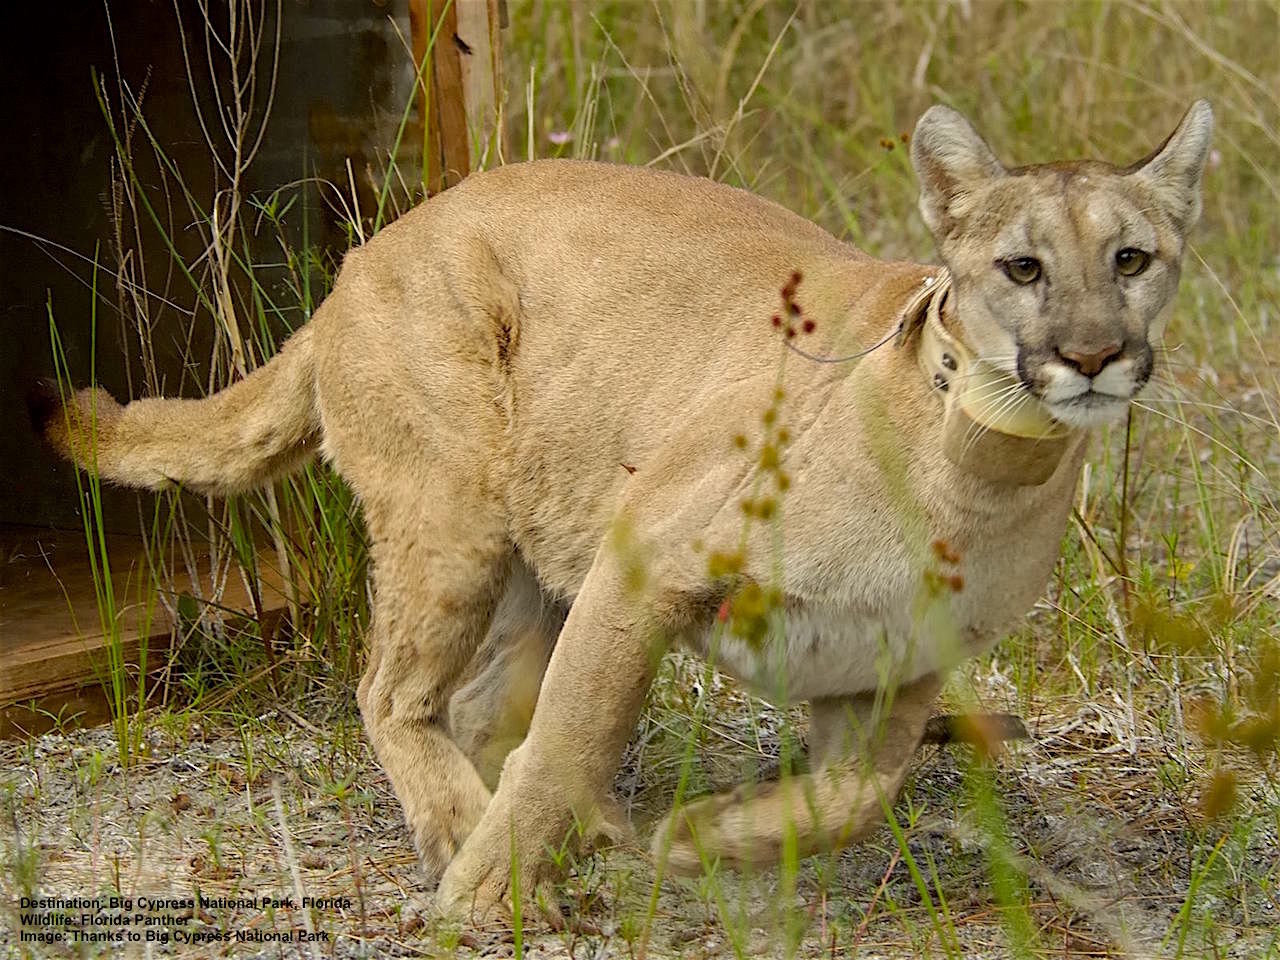 MANY OF THE REMAINING FLORIDA PANTHERS ARE TRACKED WITH RADIO COLLARS. HABITAT ENCROACHMENT HAS REDUCED THE THE FLORIDA PANTHER'S RANGE TO LESS THAN 5% OF ITS TRADITIONAL TERRITORY. THE ONLY ONE BREEDING POPULATION IN THE WORLD LIVES RIGHT HERE. IMAGE THANKS TO BIG CYPRESS NATIONAL PRESERVE.